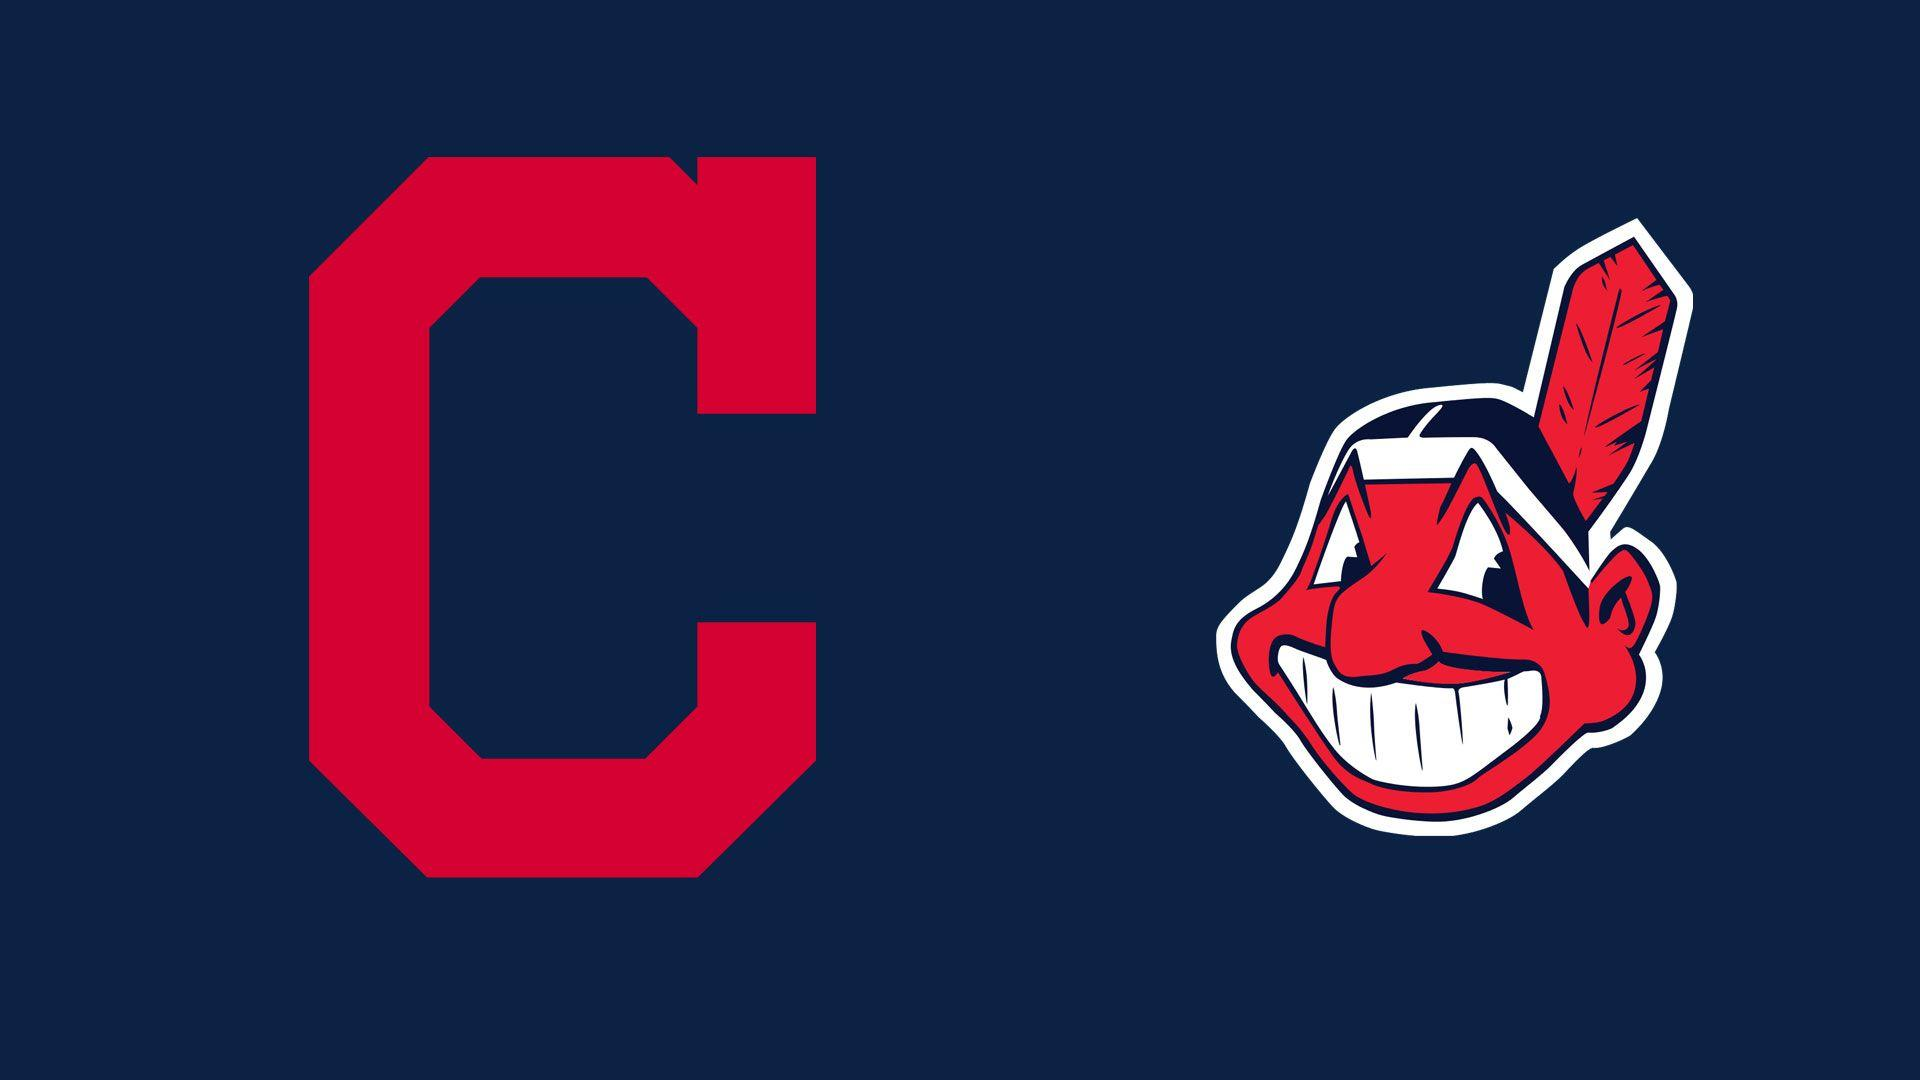 MLB Cleveland Indians Logo - 1920x1080 - Full HD 16/9 - Wallpaper ...